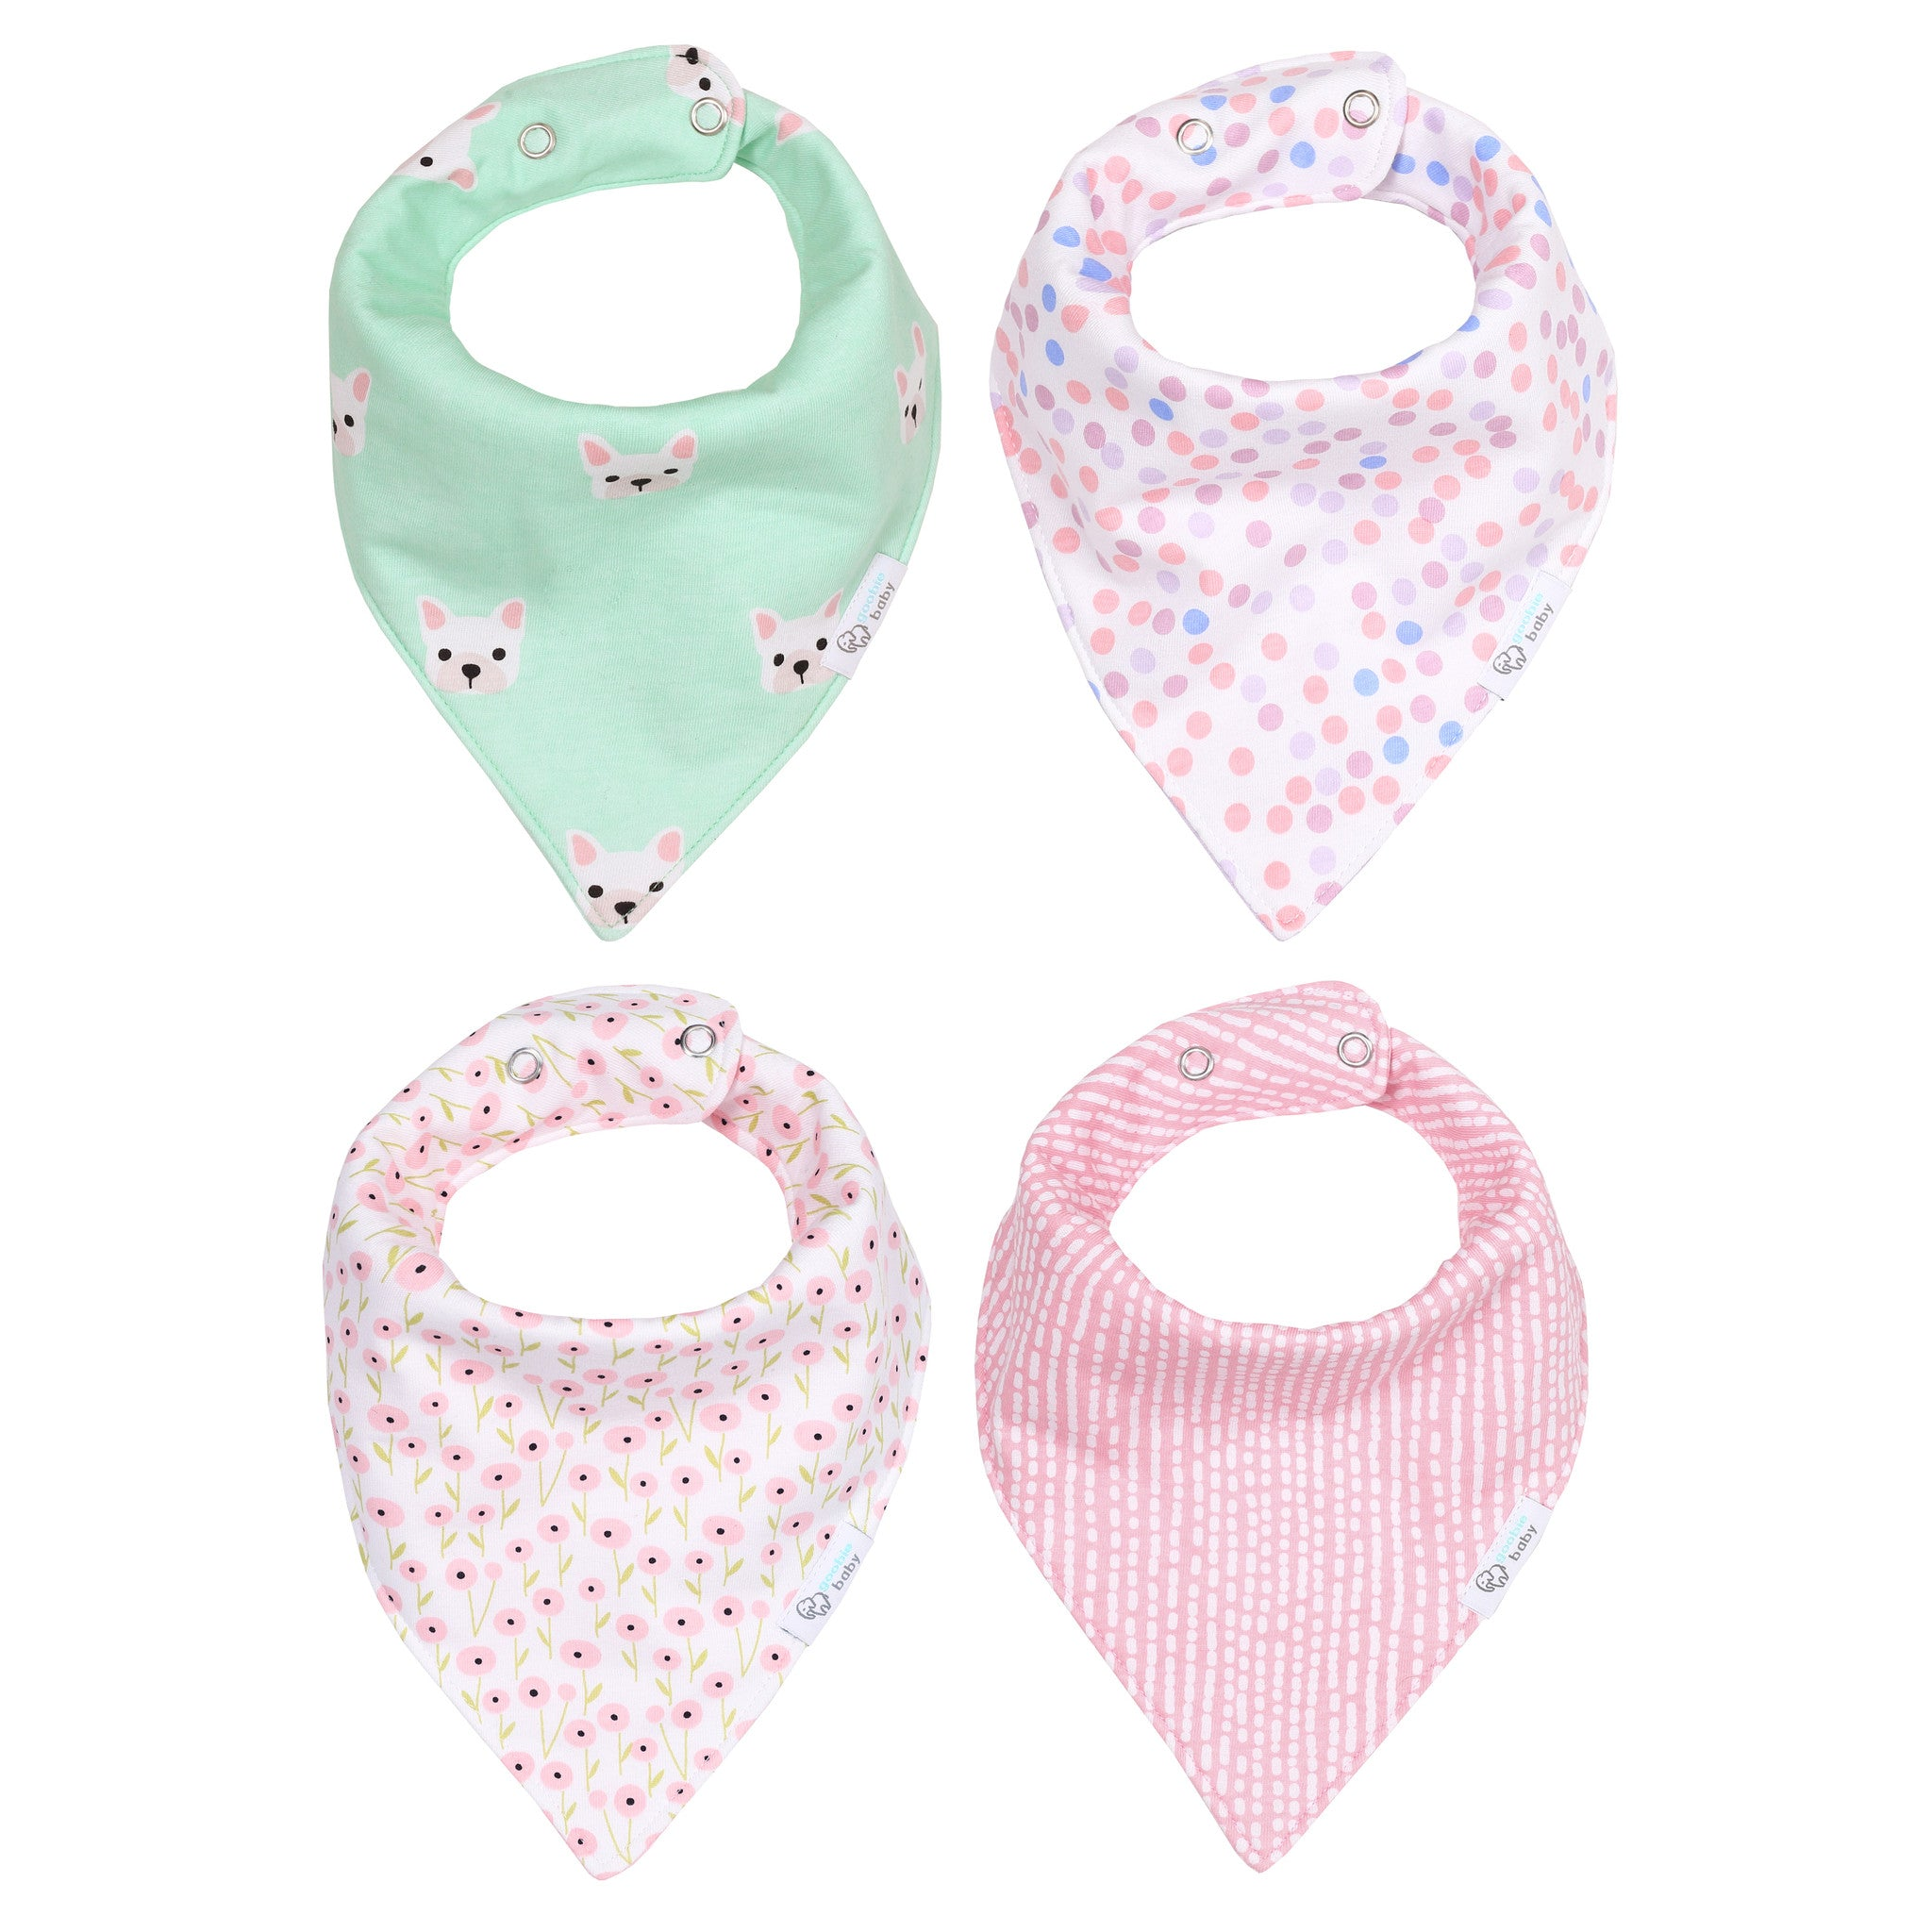 Reversible & Waterproof Cotton Baby Bandana Drool Bibs - Mint/Pink Puppy